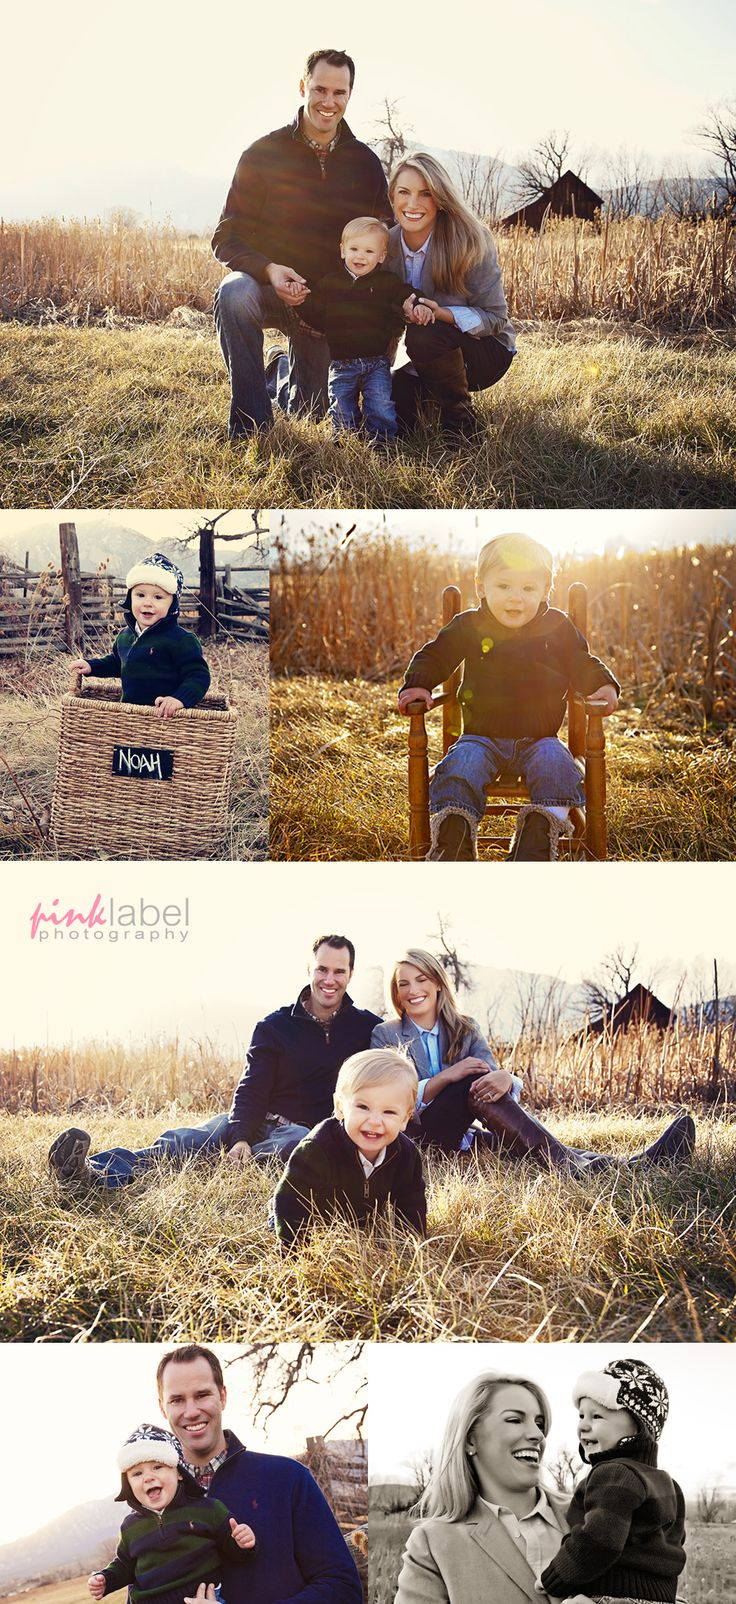 cute family picsPictures Ideas, Family Pics, Photos Ideas, Families Pictures, Pics Poses, Families Photography, Pics Ideas, Families Photos, Families Pics